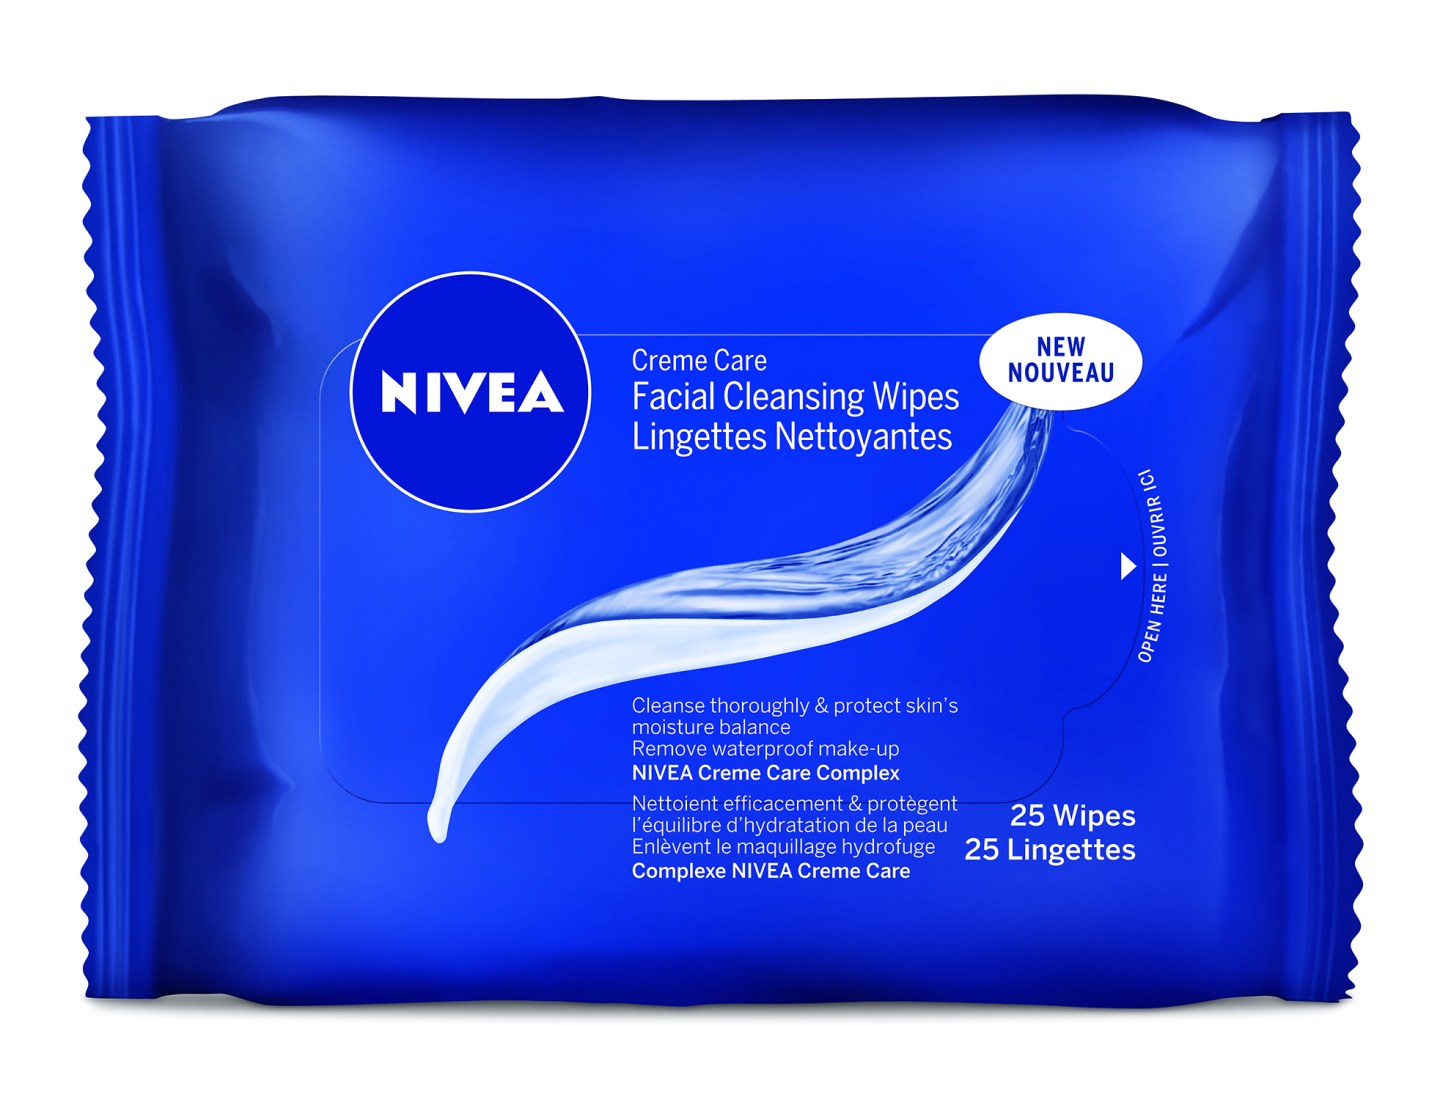 NIVEA Creme Care Facial Cleansing Wipes 25pc_056594010413